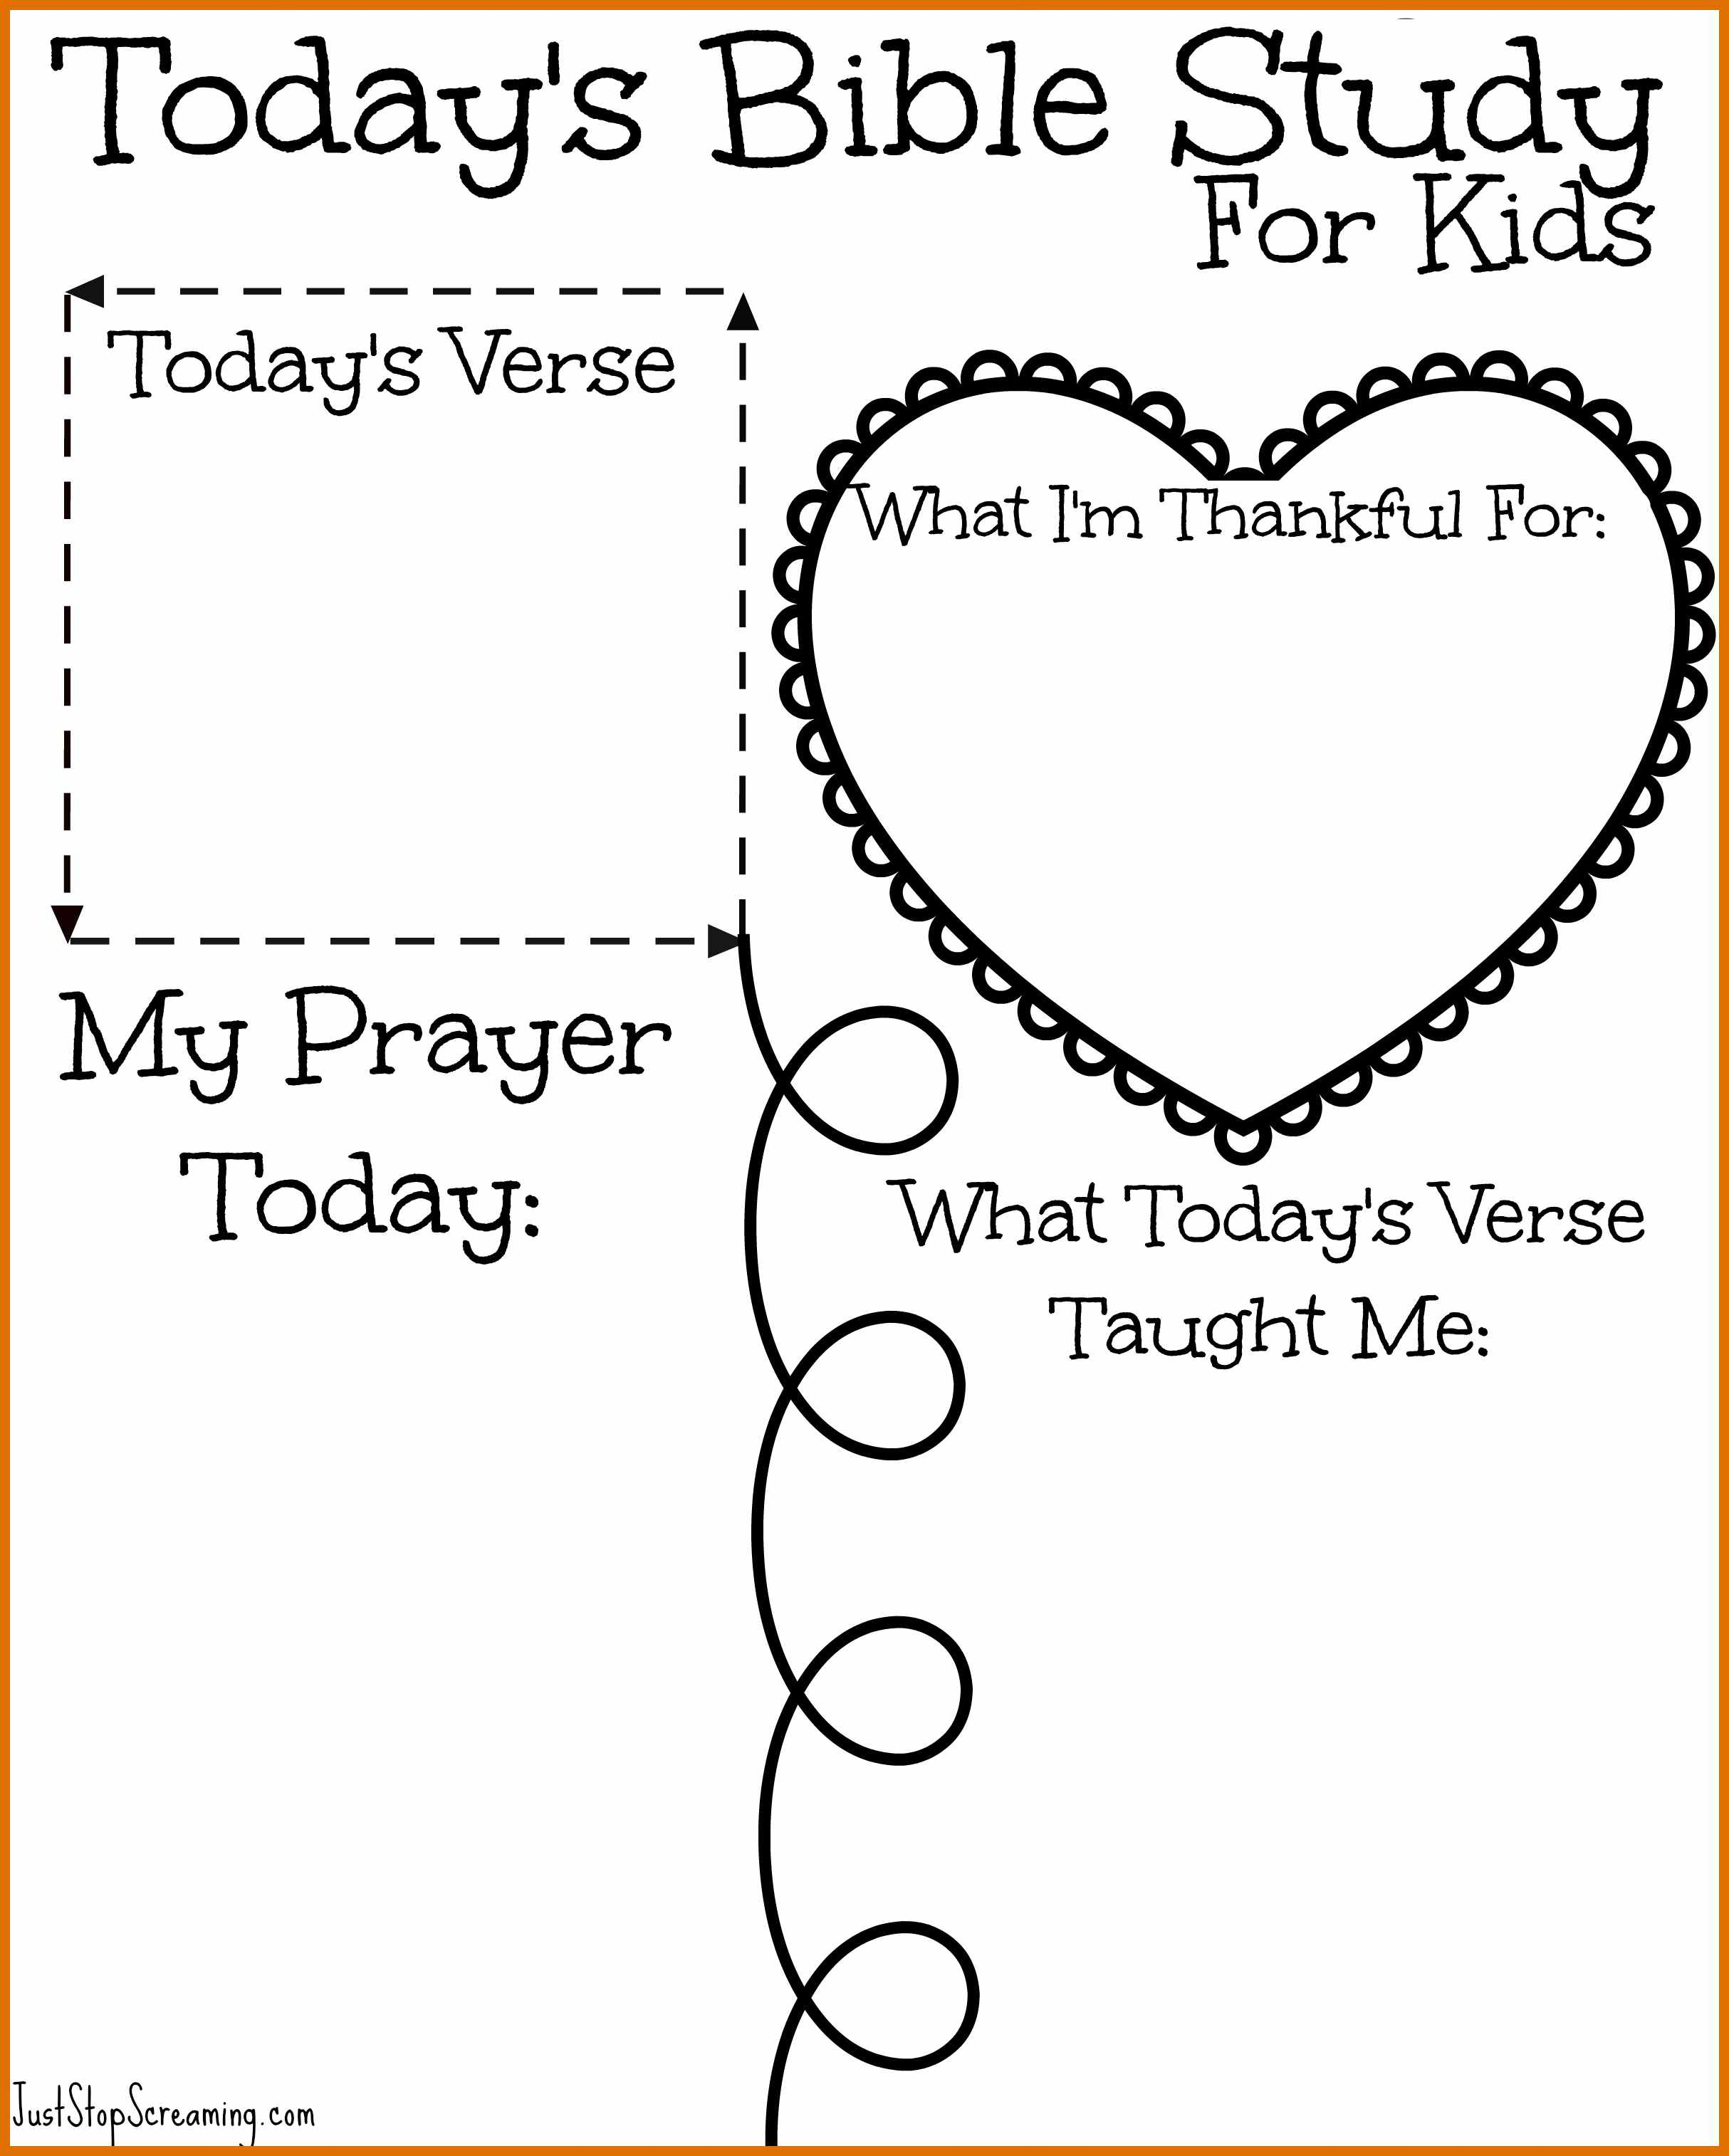 8-9 Free Printable Bible Study Worksheets | Sowtemplate | Free Printable Children's Bible Worksheets